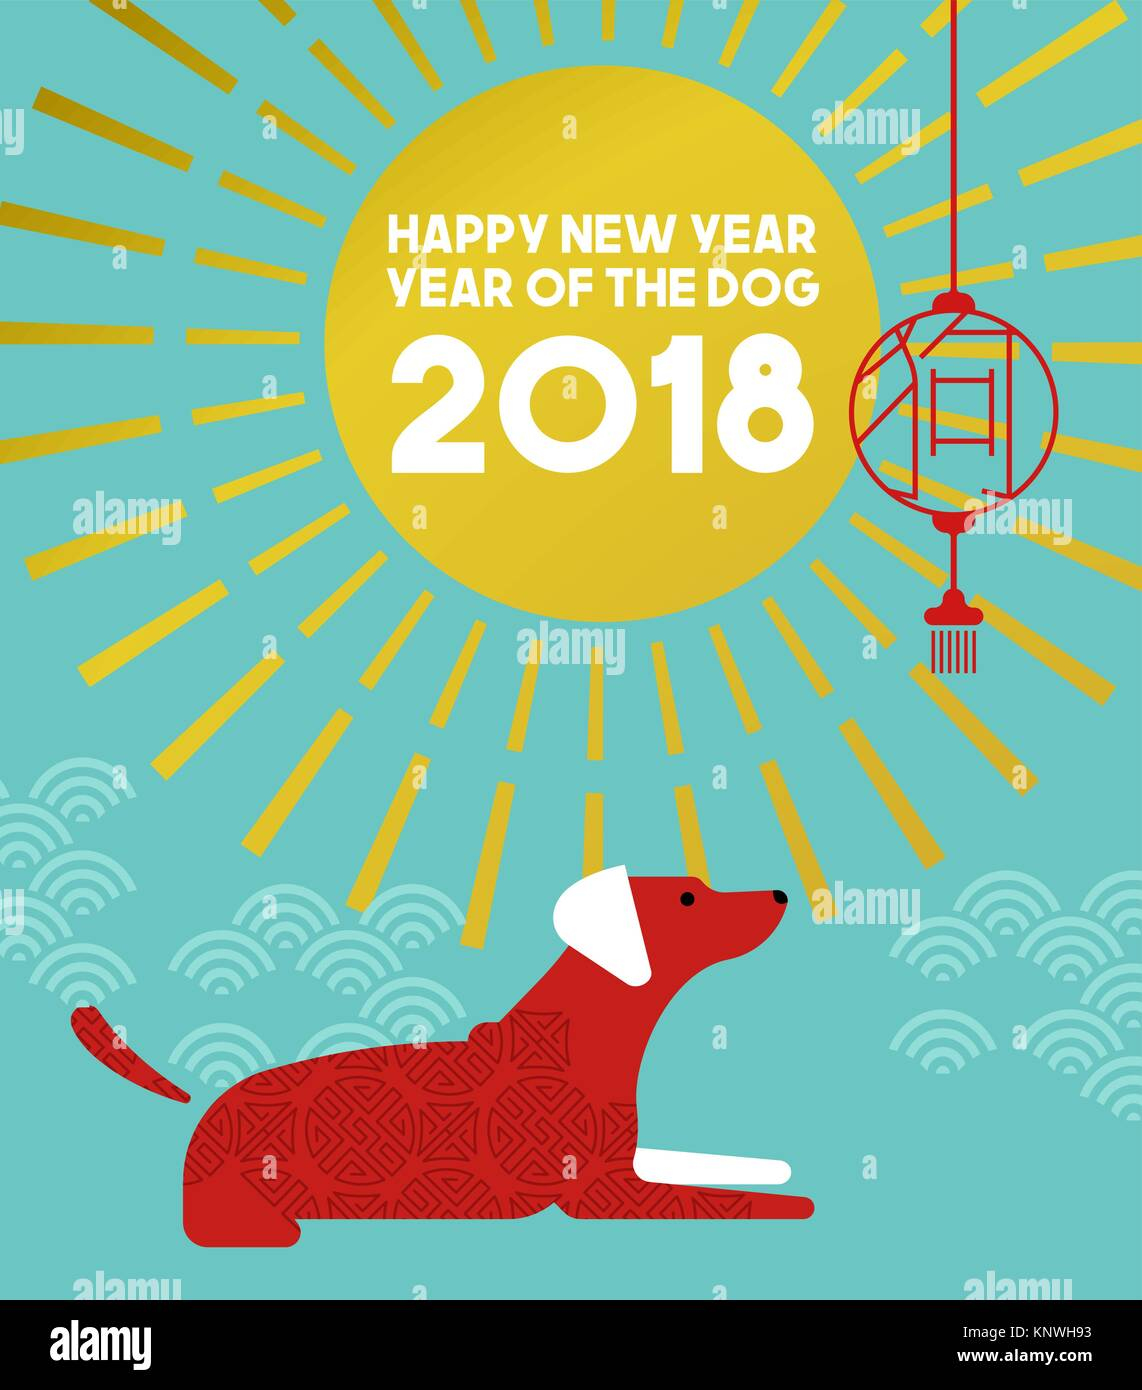 chinese new year of the dog 2018 illustration in modern flat art style with traditional asian ornaments and decoration eps10 vector